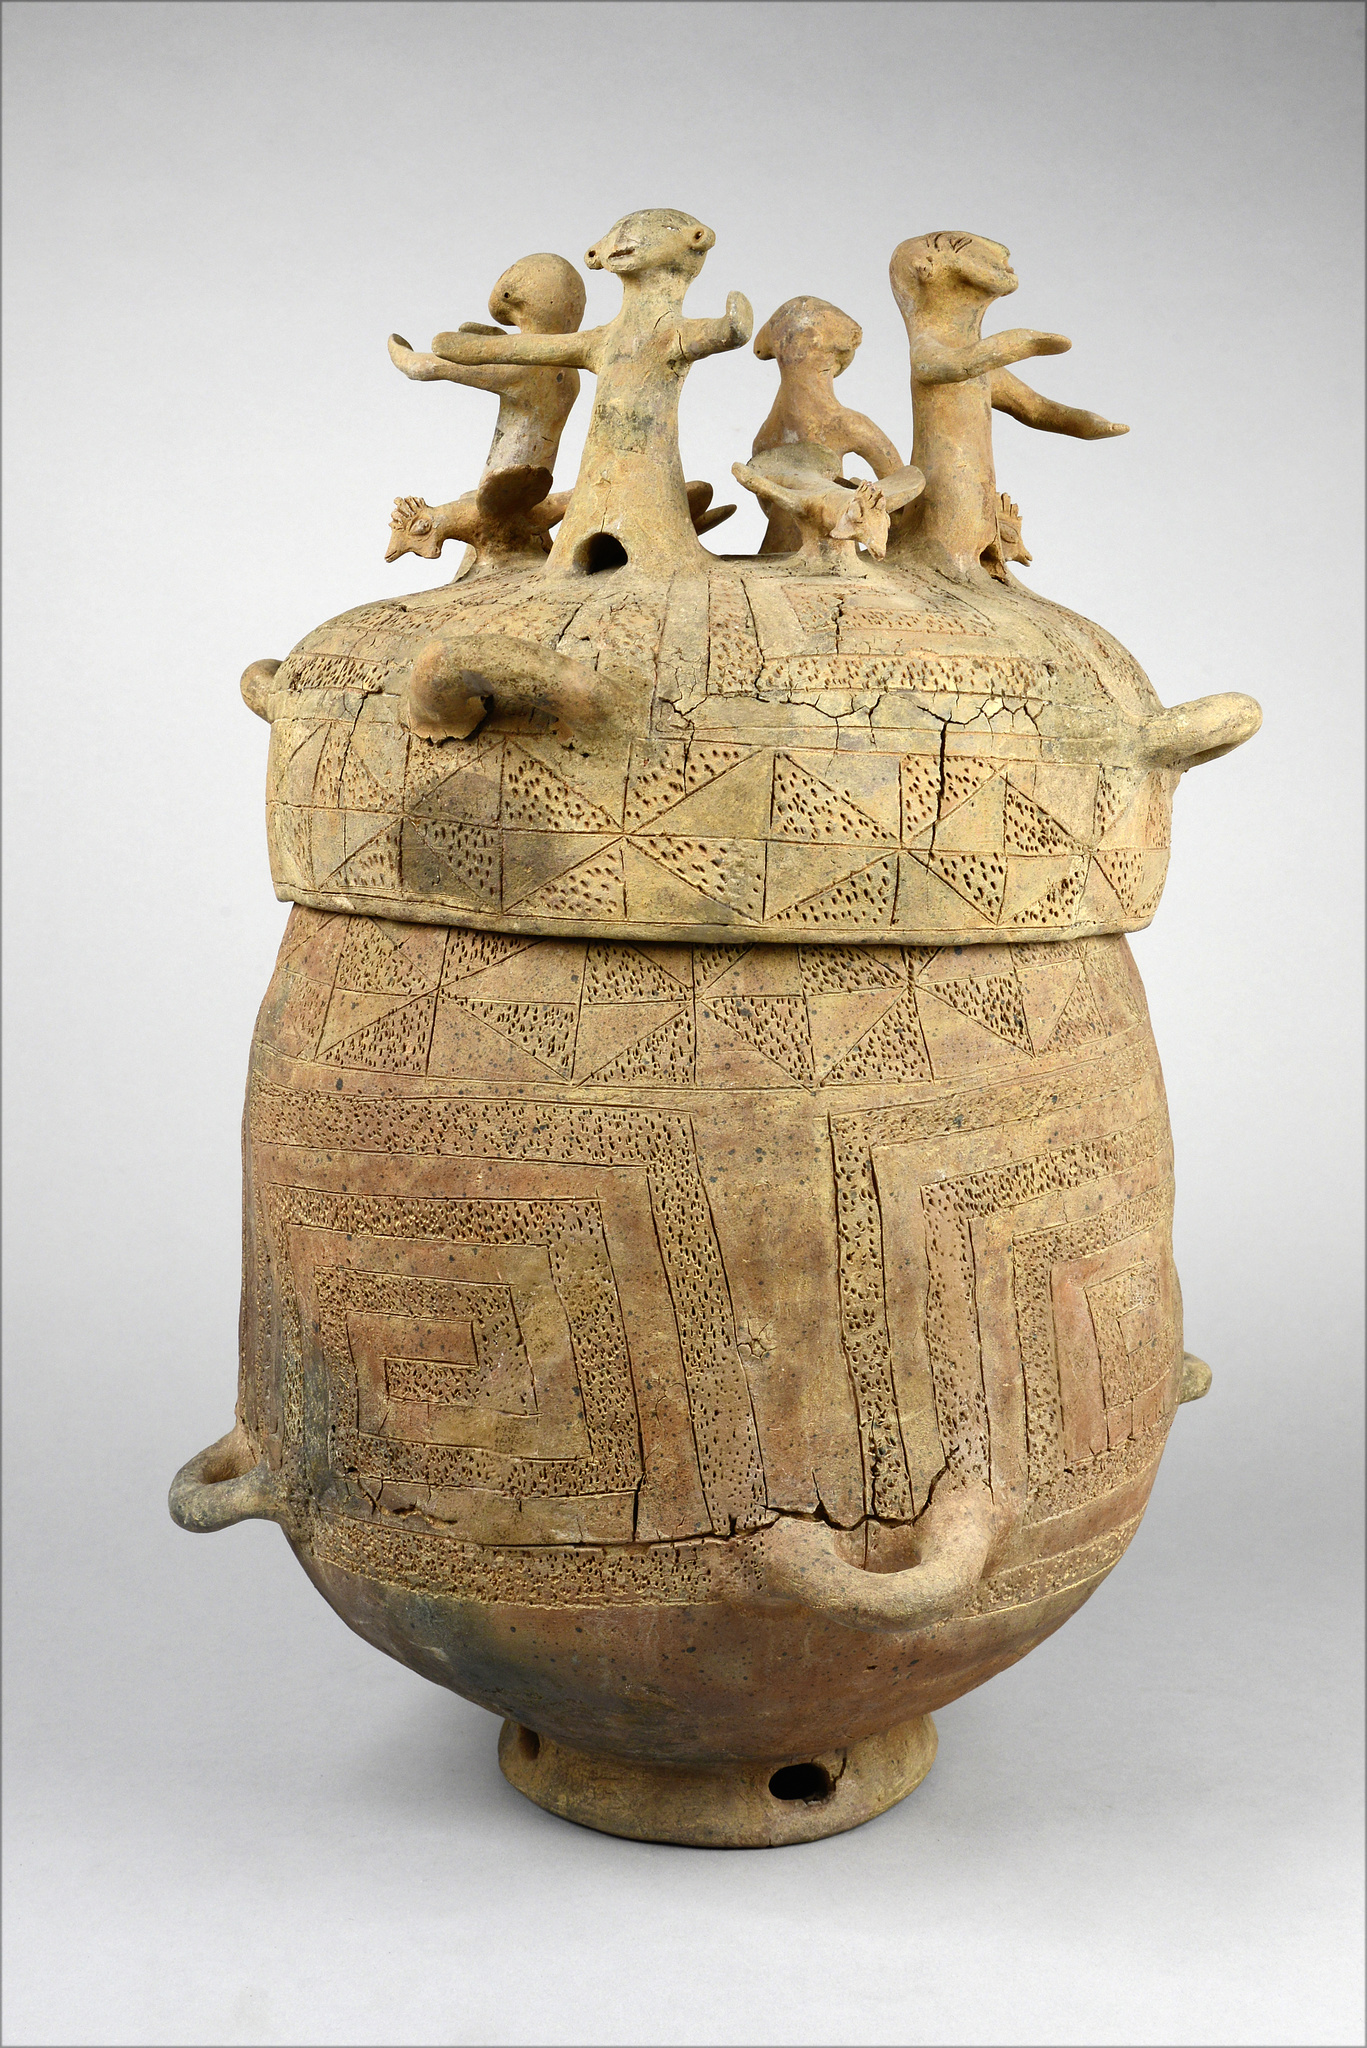 Burial jar with figures and cocks, 19th Century or earlier